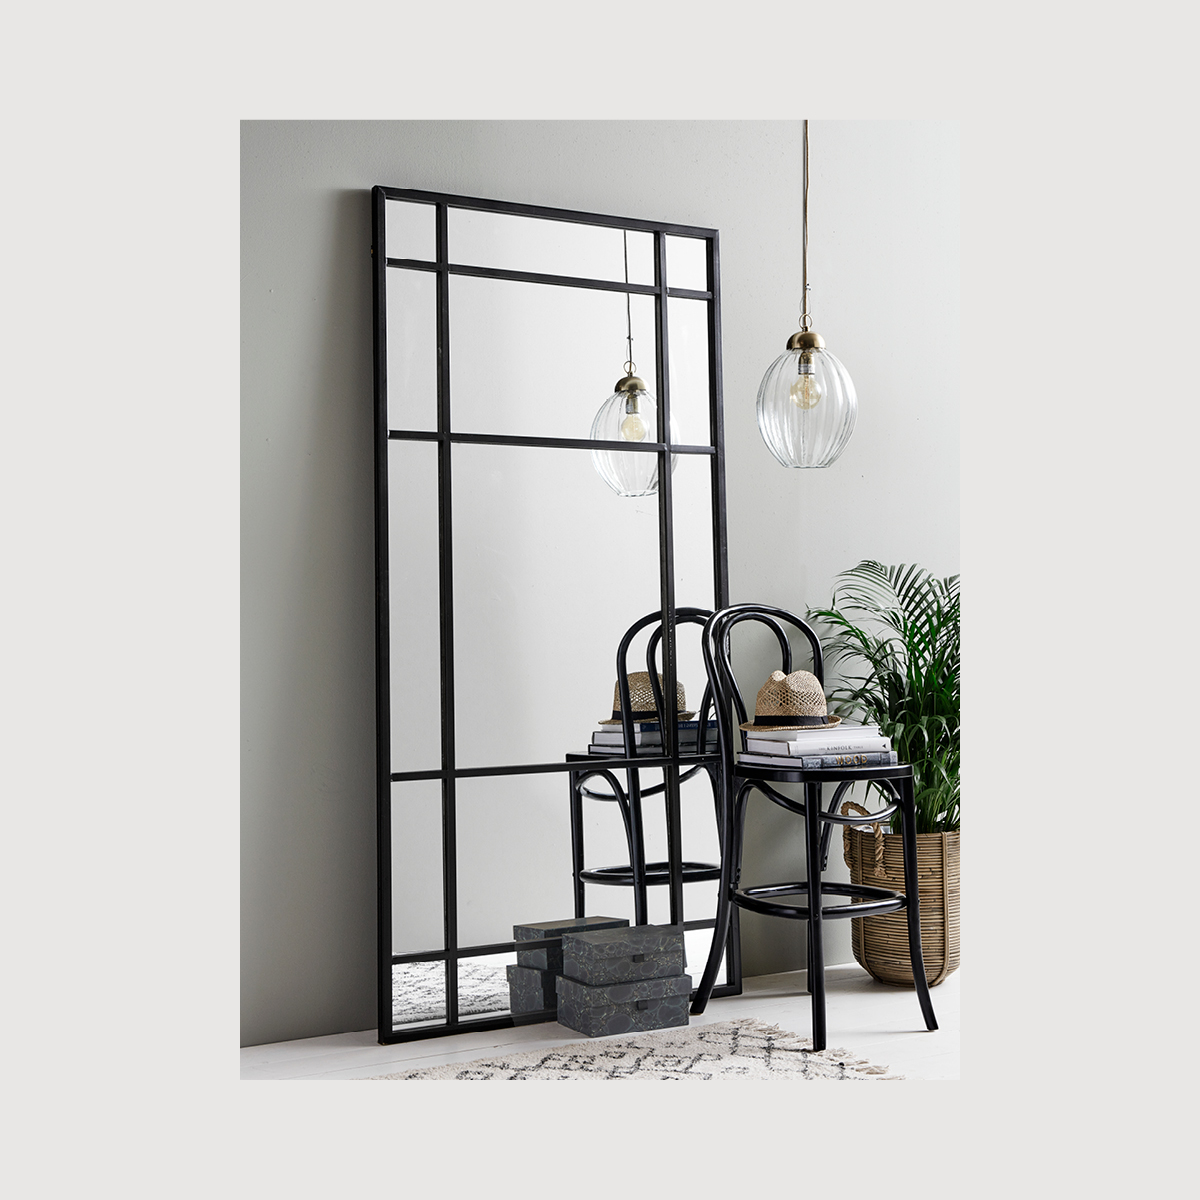 Nordal, Crittall Mirror, black frame mirror, window mirror